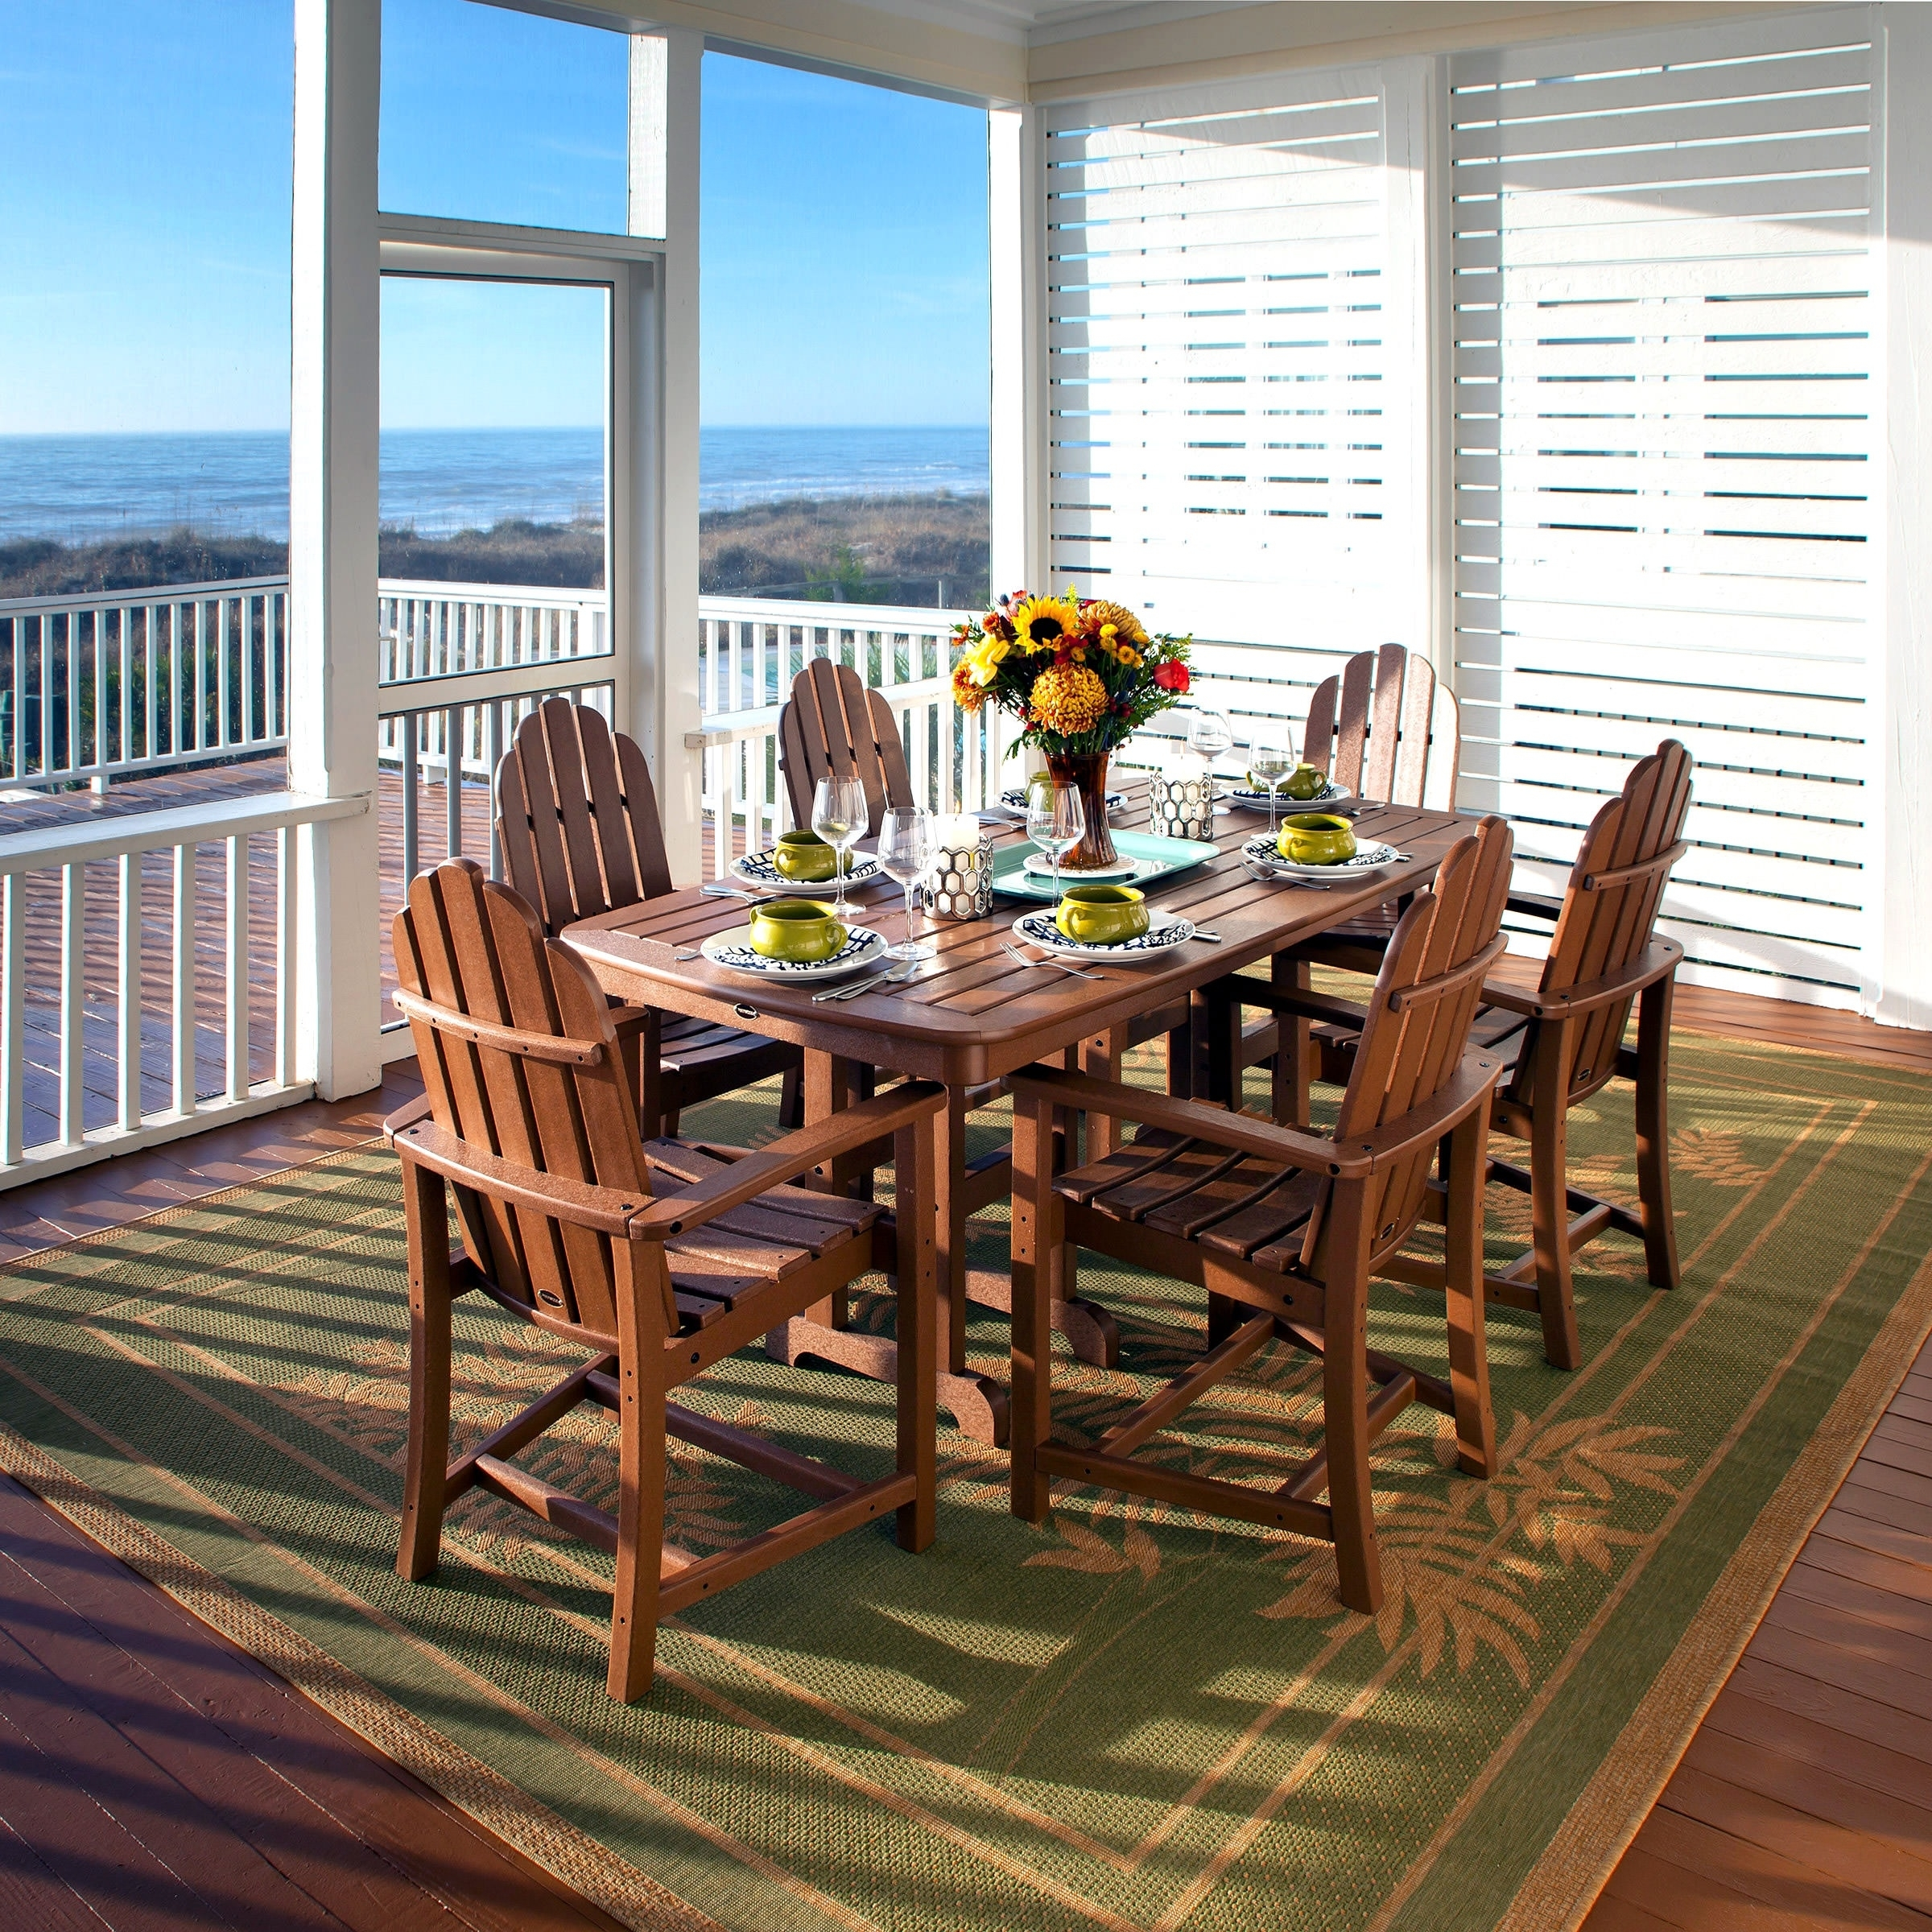 Buy Polywood® – Poly Lumber Dining Sets Furniture : Premium Poly Patios With Recent Market 7 Piece Dining Sets With Side Chairs (View 20 of 20)